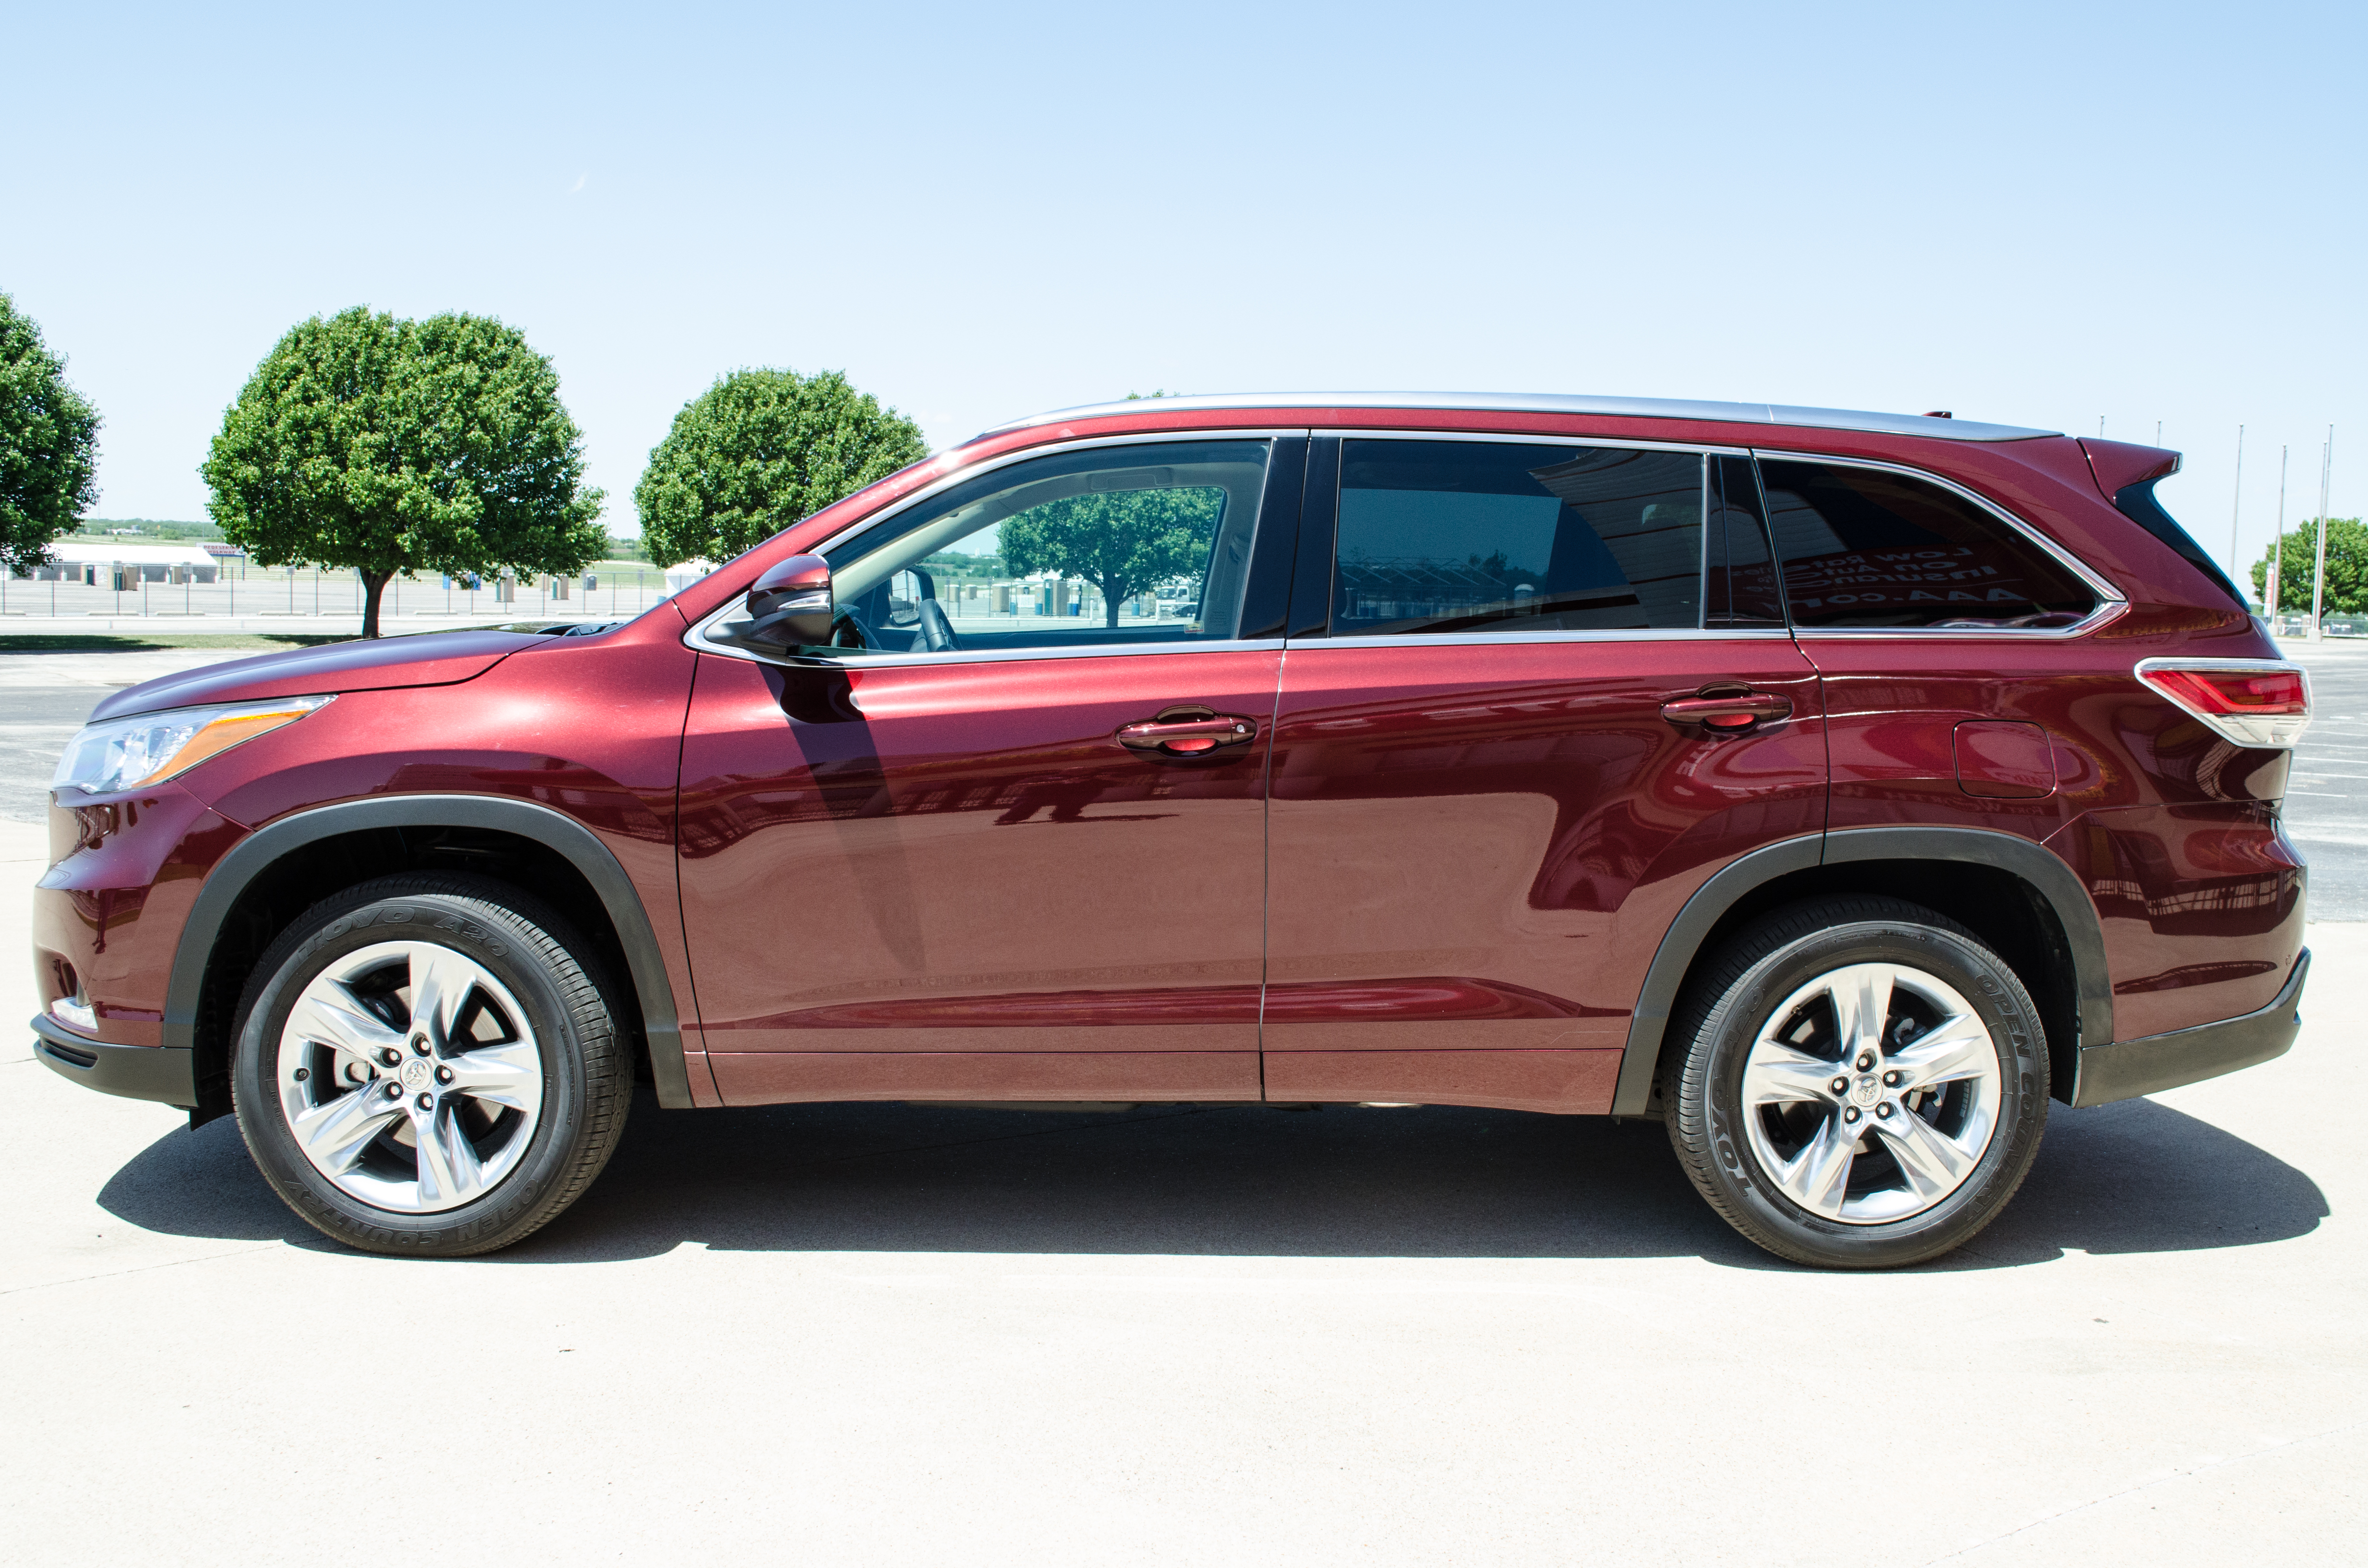 2014 toyota highlander performance and technology motor review. Black Bedroom Furniture Sets. Home Design Ideas